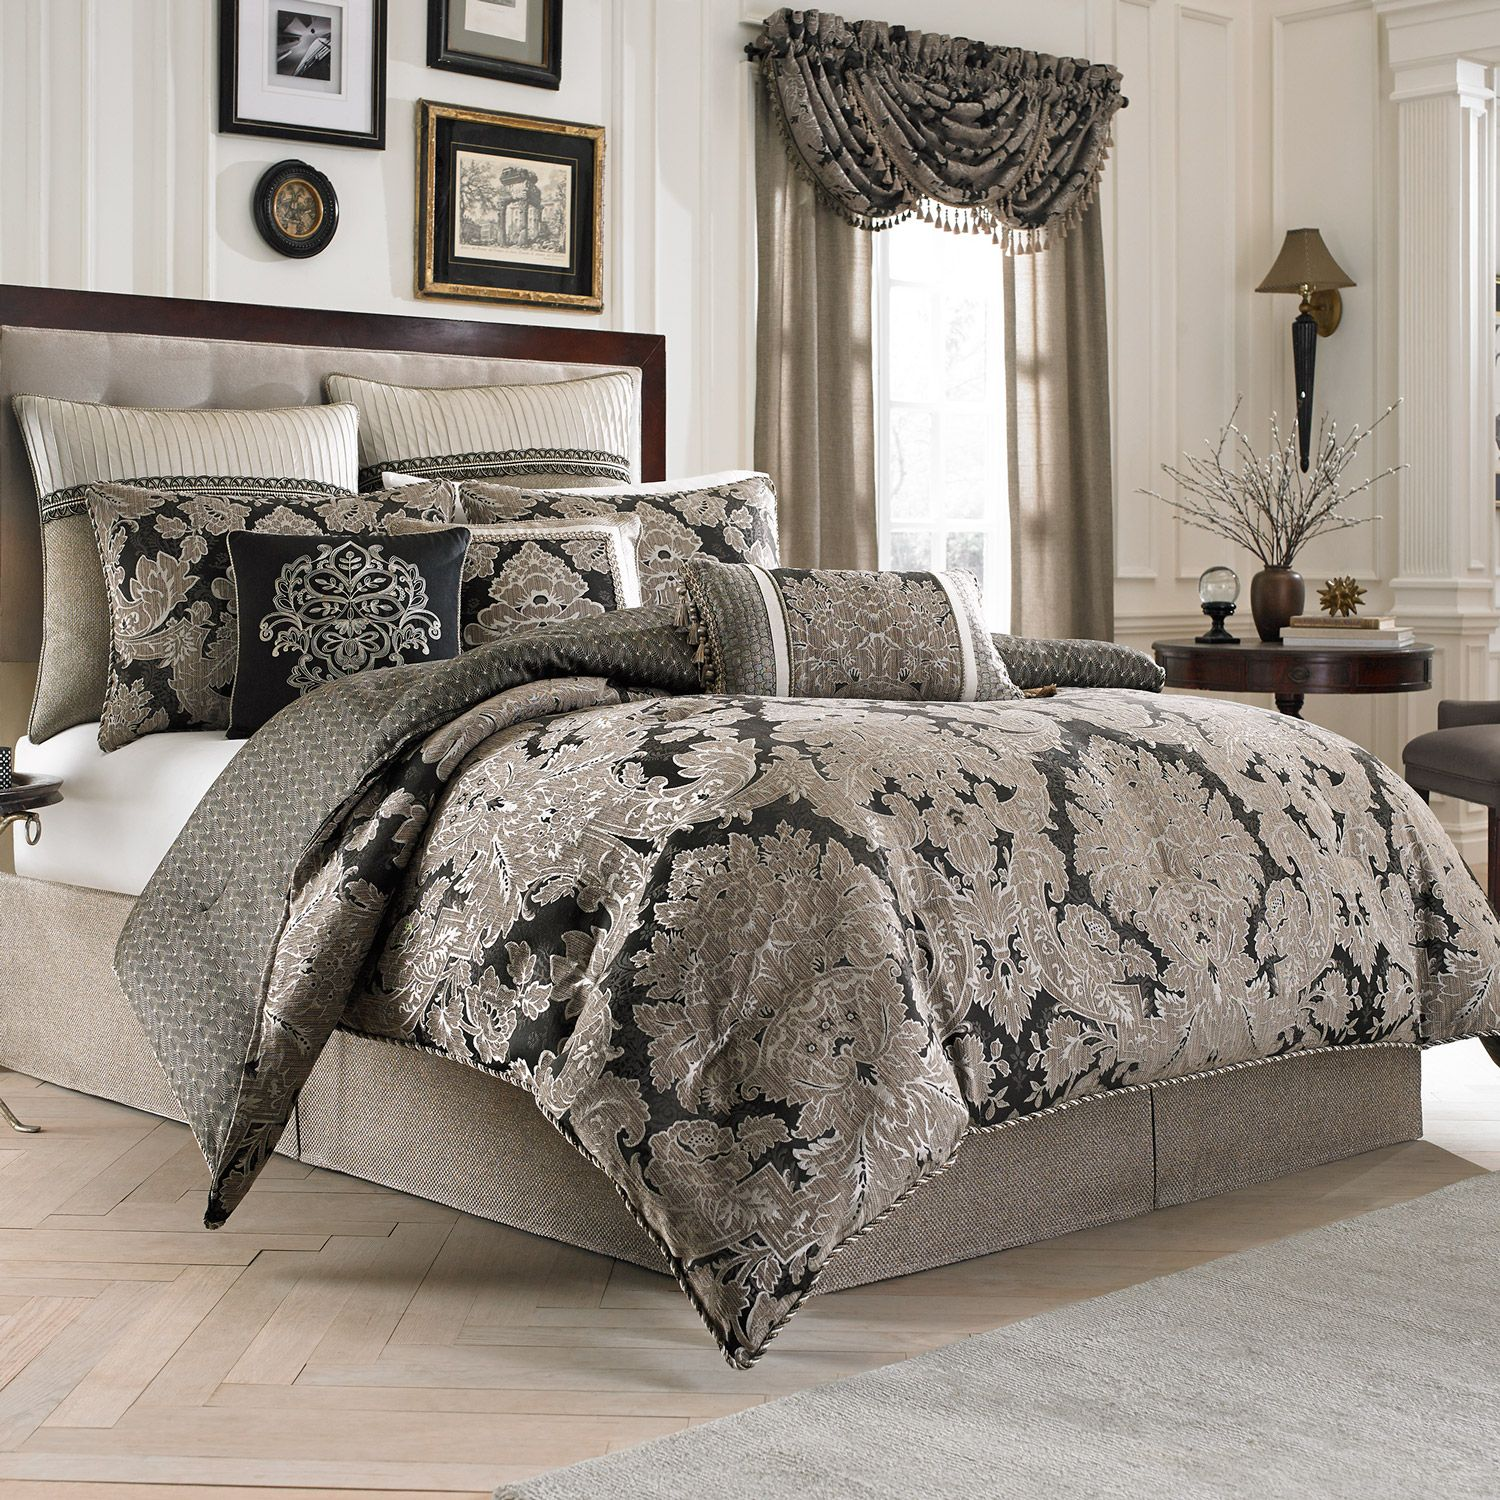 California King Bed Comforter Sets Bringing Refinement in Your ...